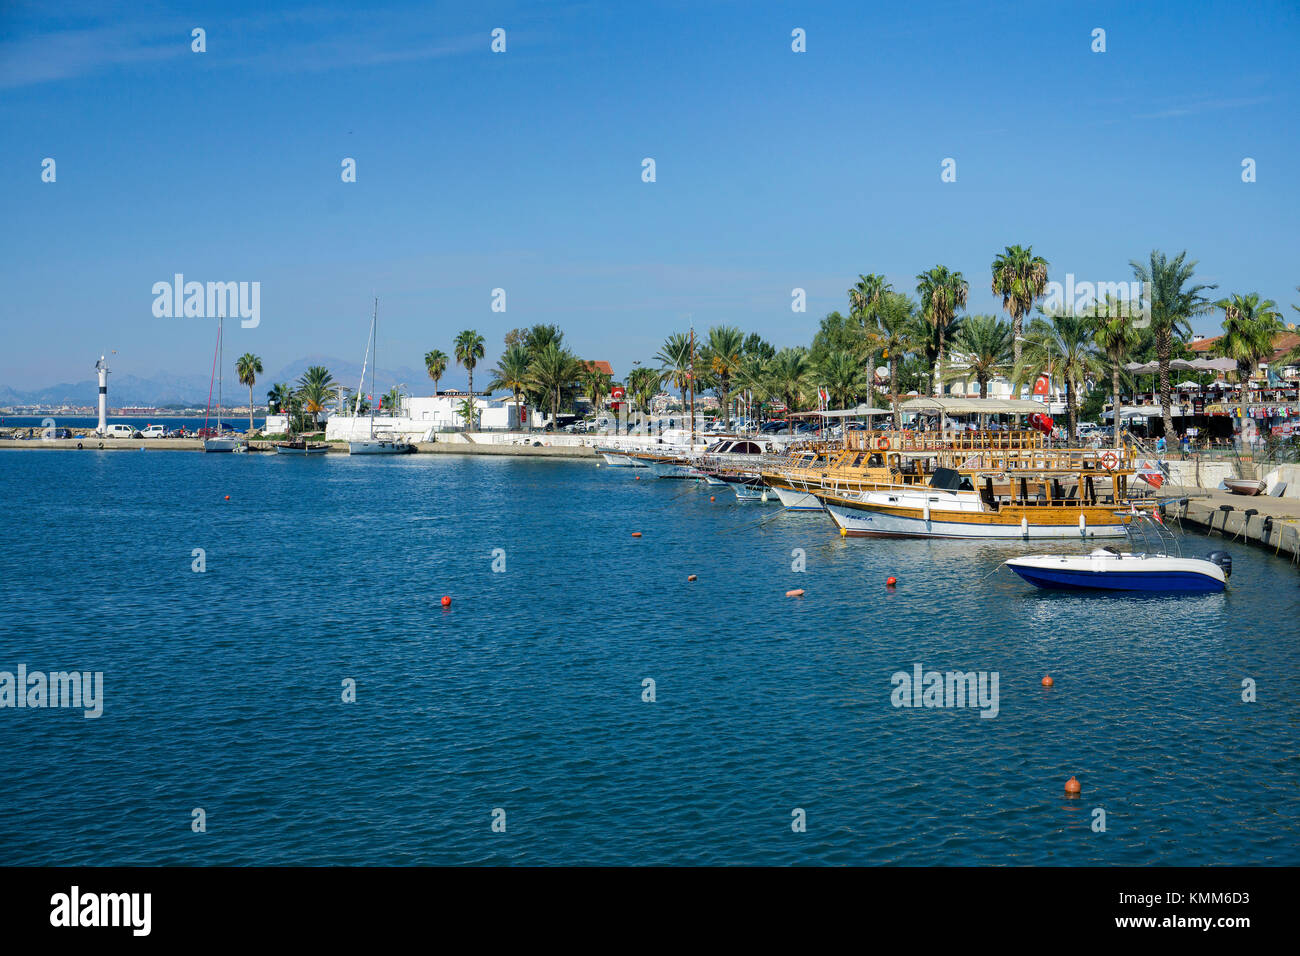 Fishing boats at the harbour of Side, turkish riviera, Turkey - Stock Image